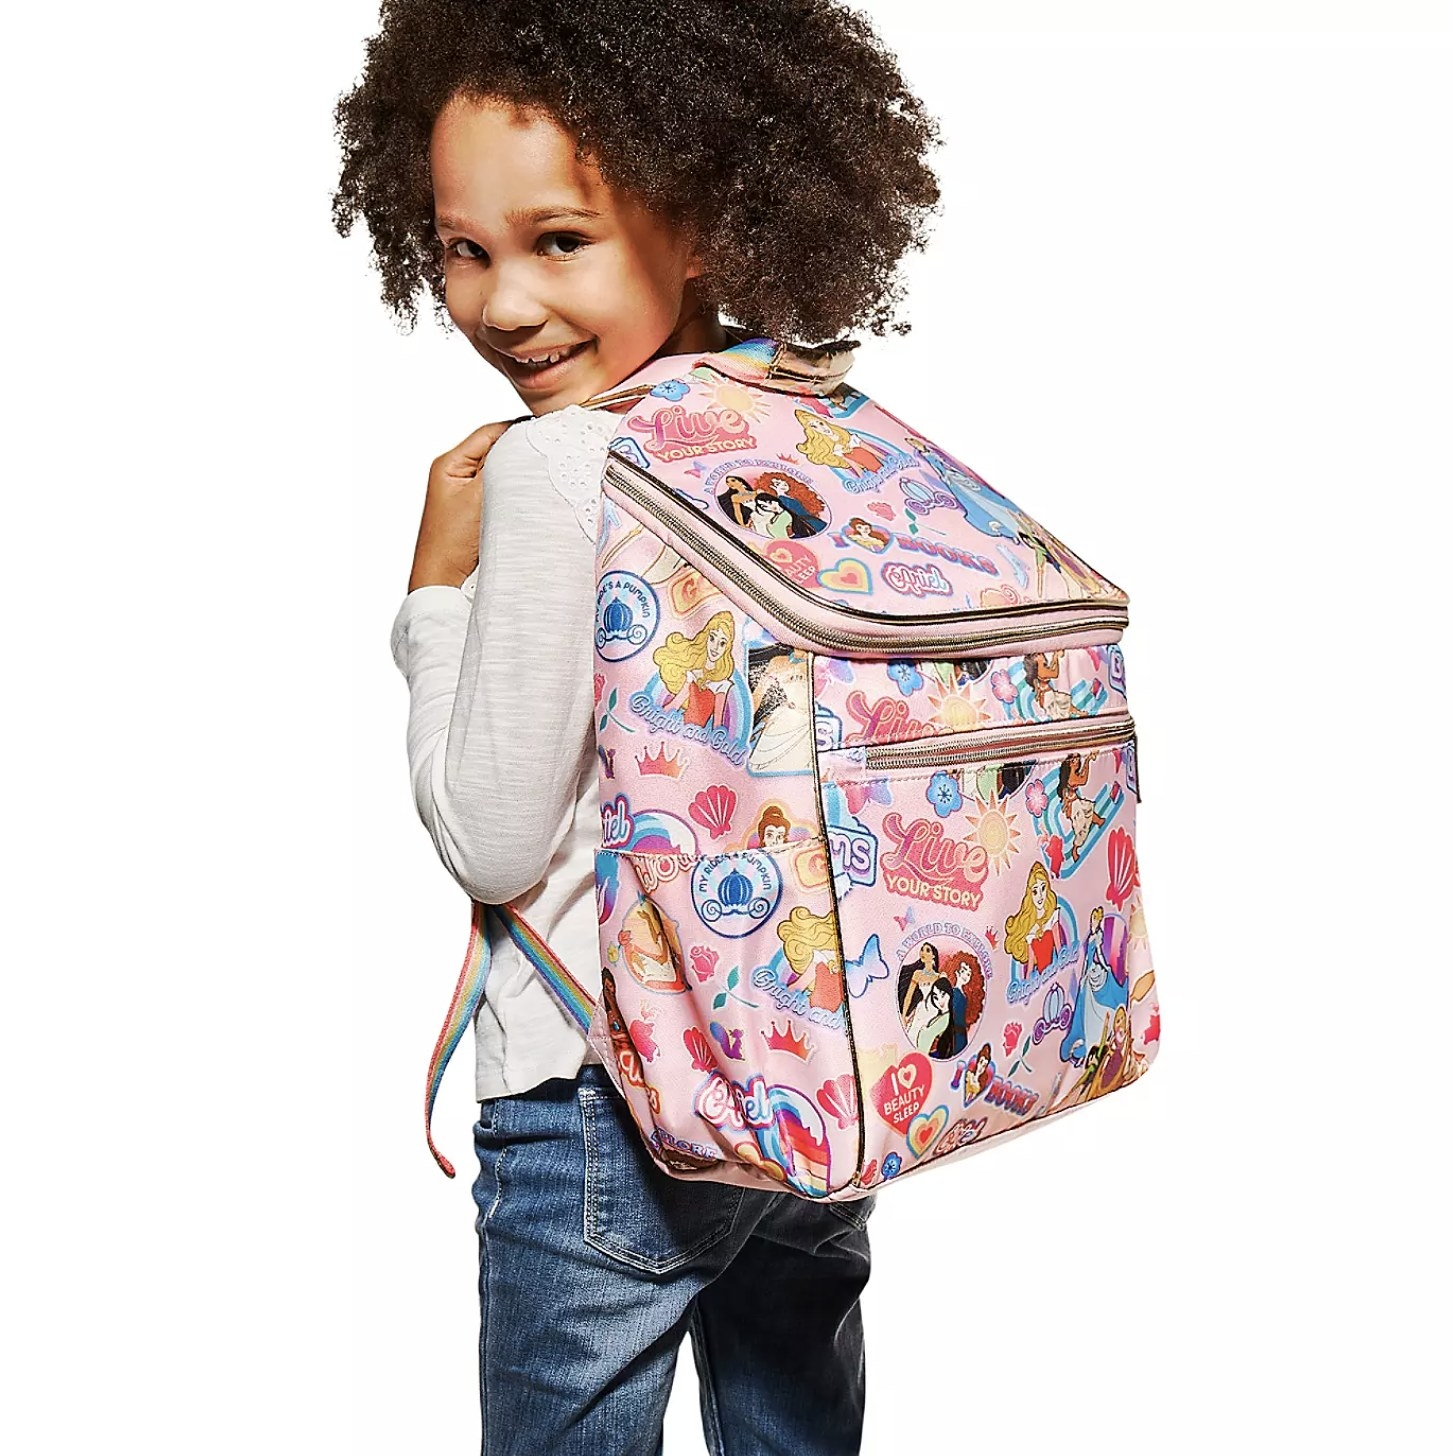 Person wearing the pink backpack with princesses all over it